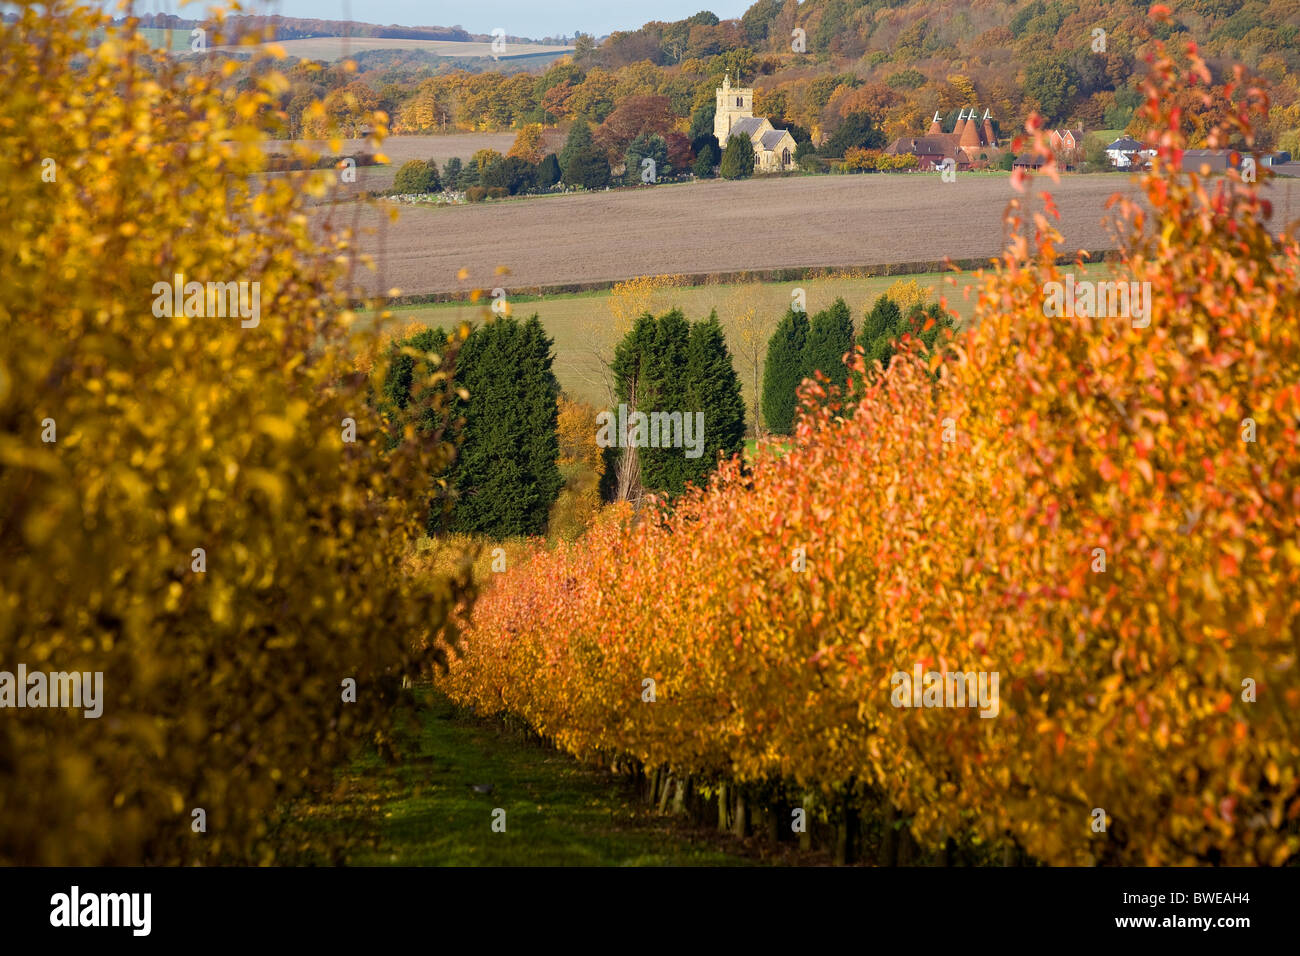 Autumn view of Horsemonden church and oast house from an orchard of golden leaf cherry trees near Goudhurst Kent - Stock Image